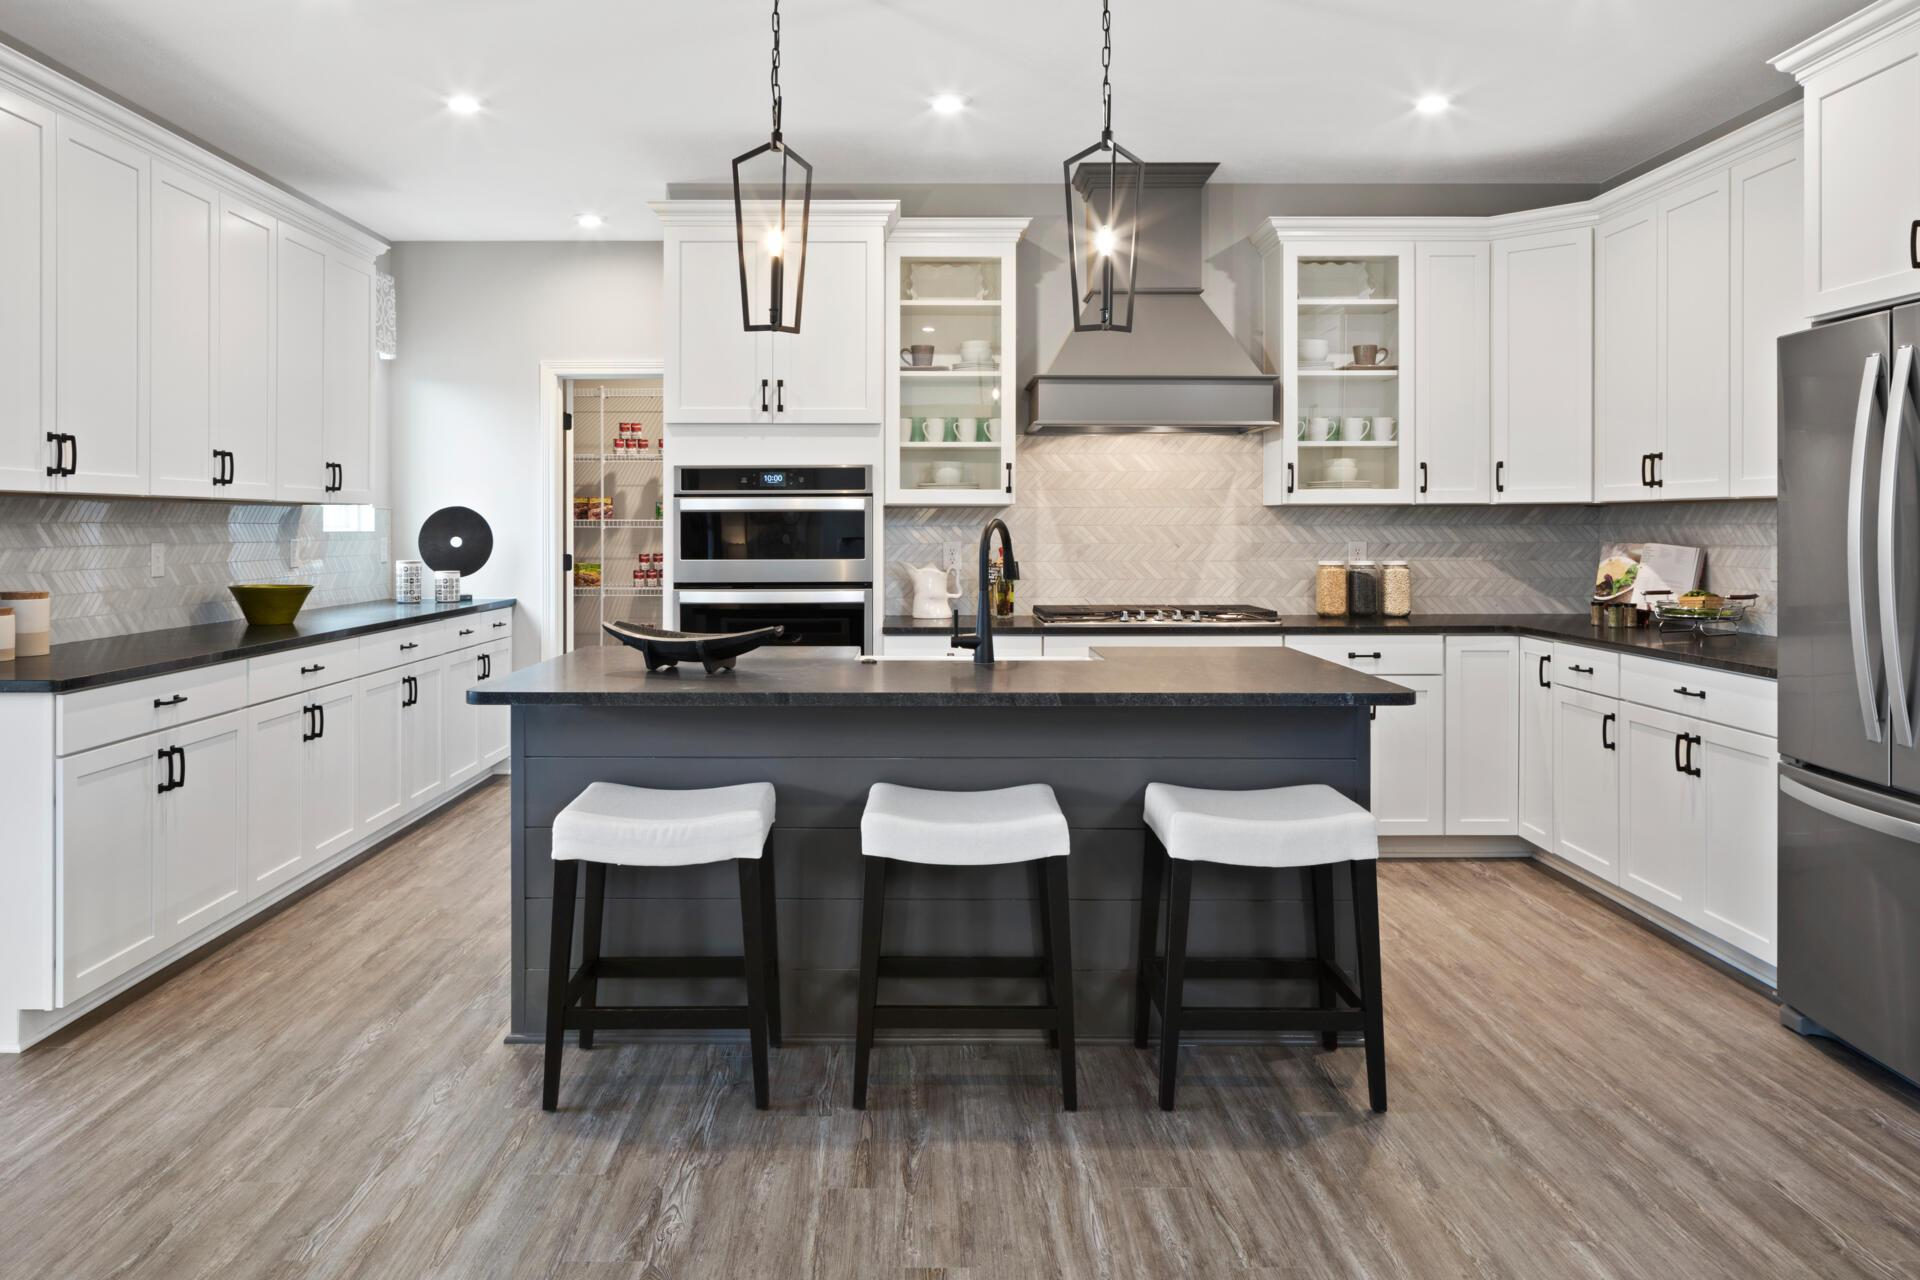 Kitchen featured in the Buchanan By Drees Homes in Indianapolis, IN